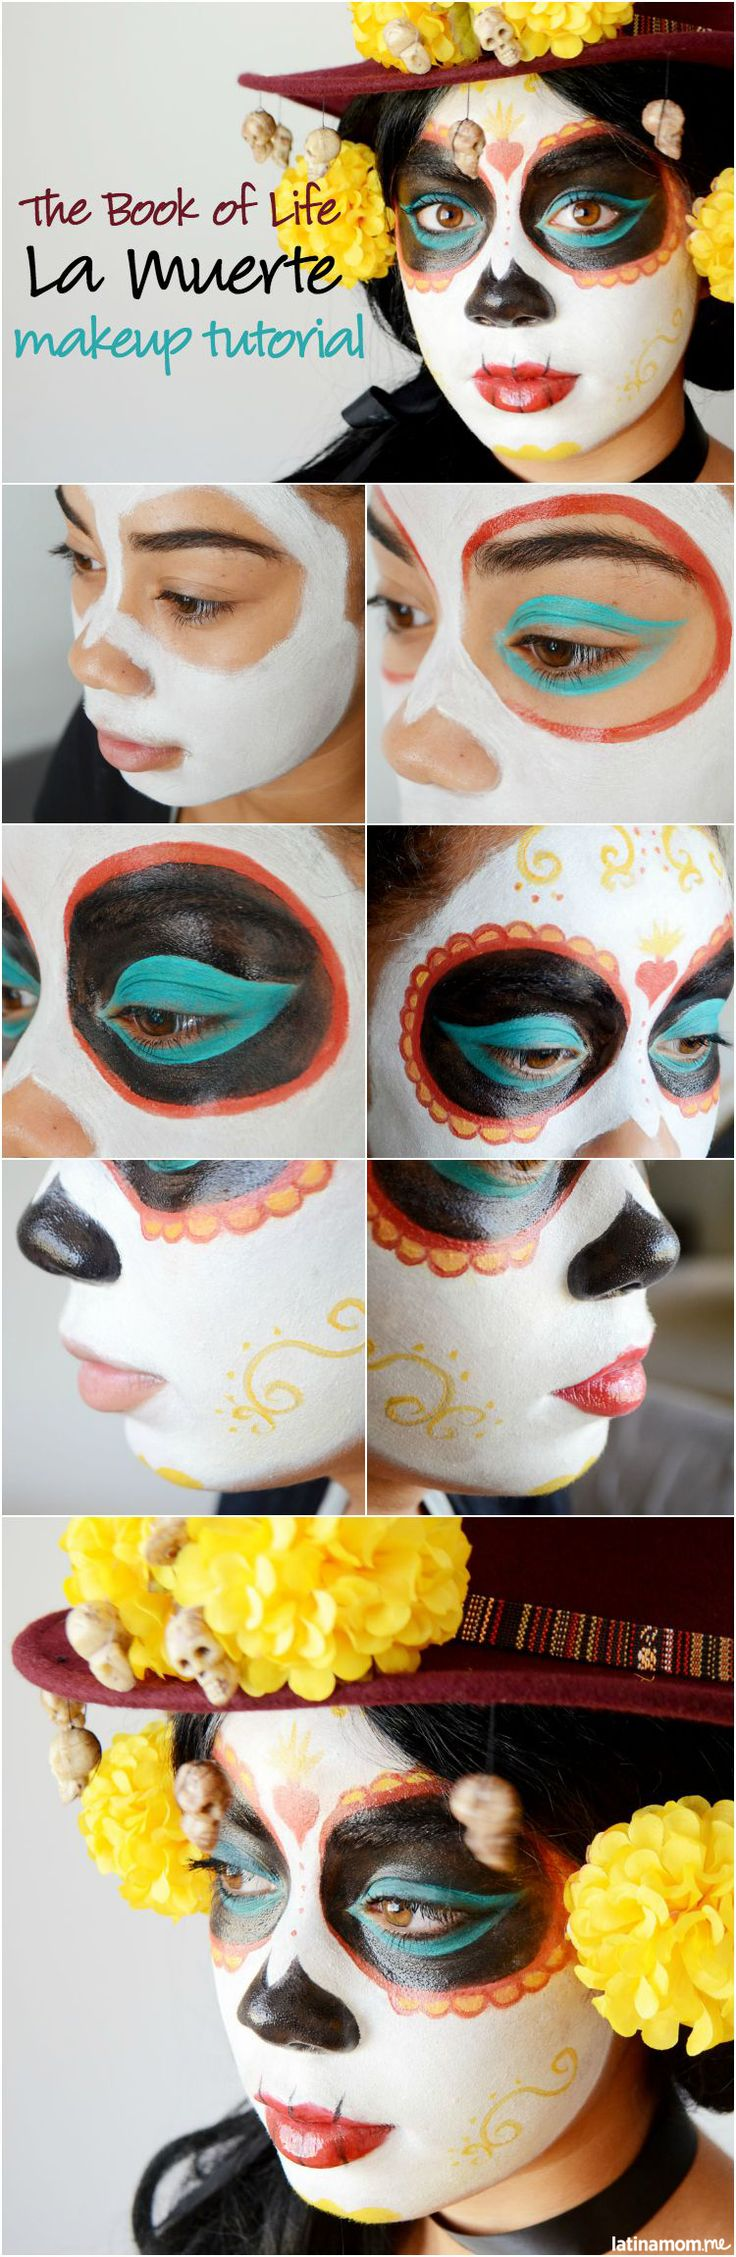 La Muerte-Inspired Makeup Tutorial - Latina Mom Tips & Advice   mom.me by TheArtMuse #LatinaBloggers